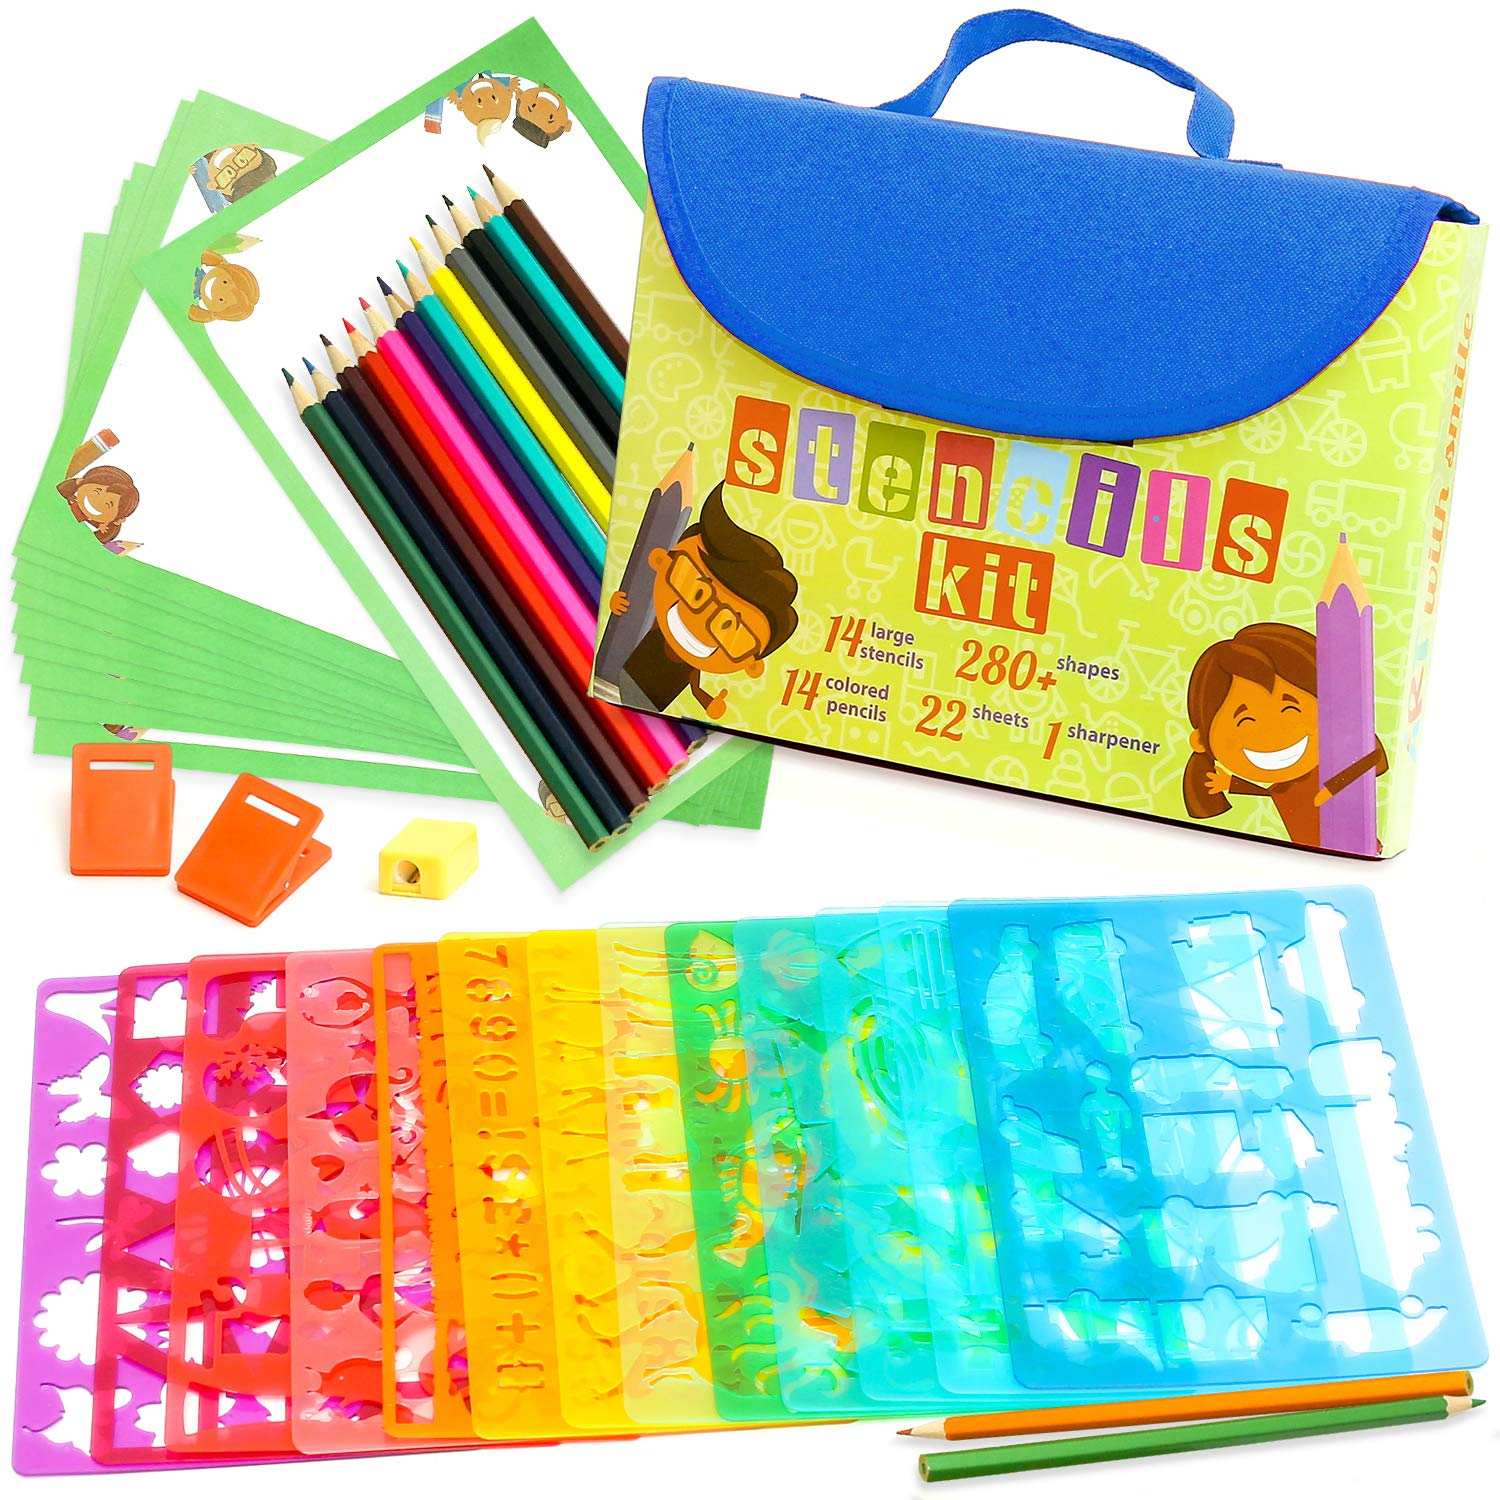 Stencil Drawing Kit for Kids w/Carry Case - 54 pcs. w/ 280 Stencil Shapes and Colored Pencils - Arts and Crafts for Home Travel - Fun Creative STEM Toy for Girls and Boys Ages 3 to Teen - Blue by Art with smile